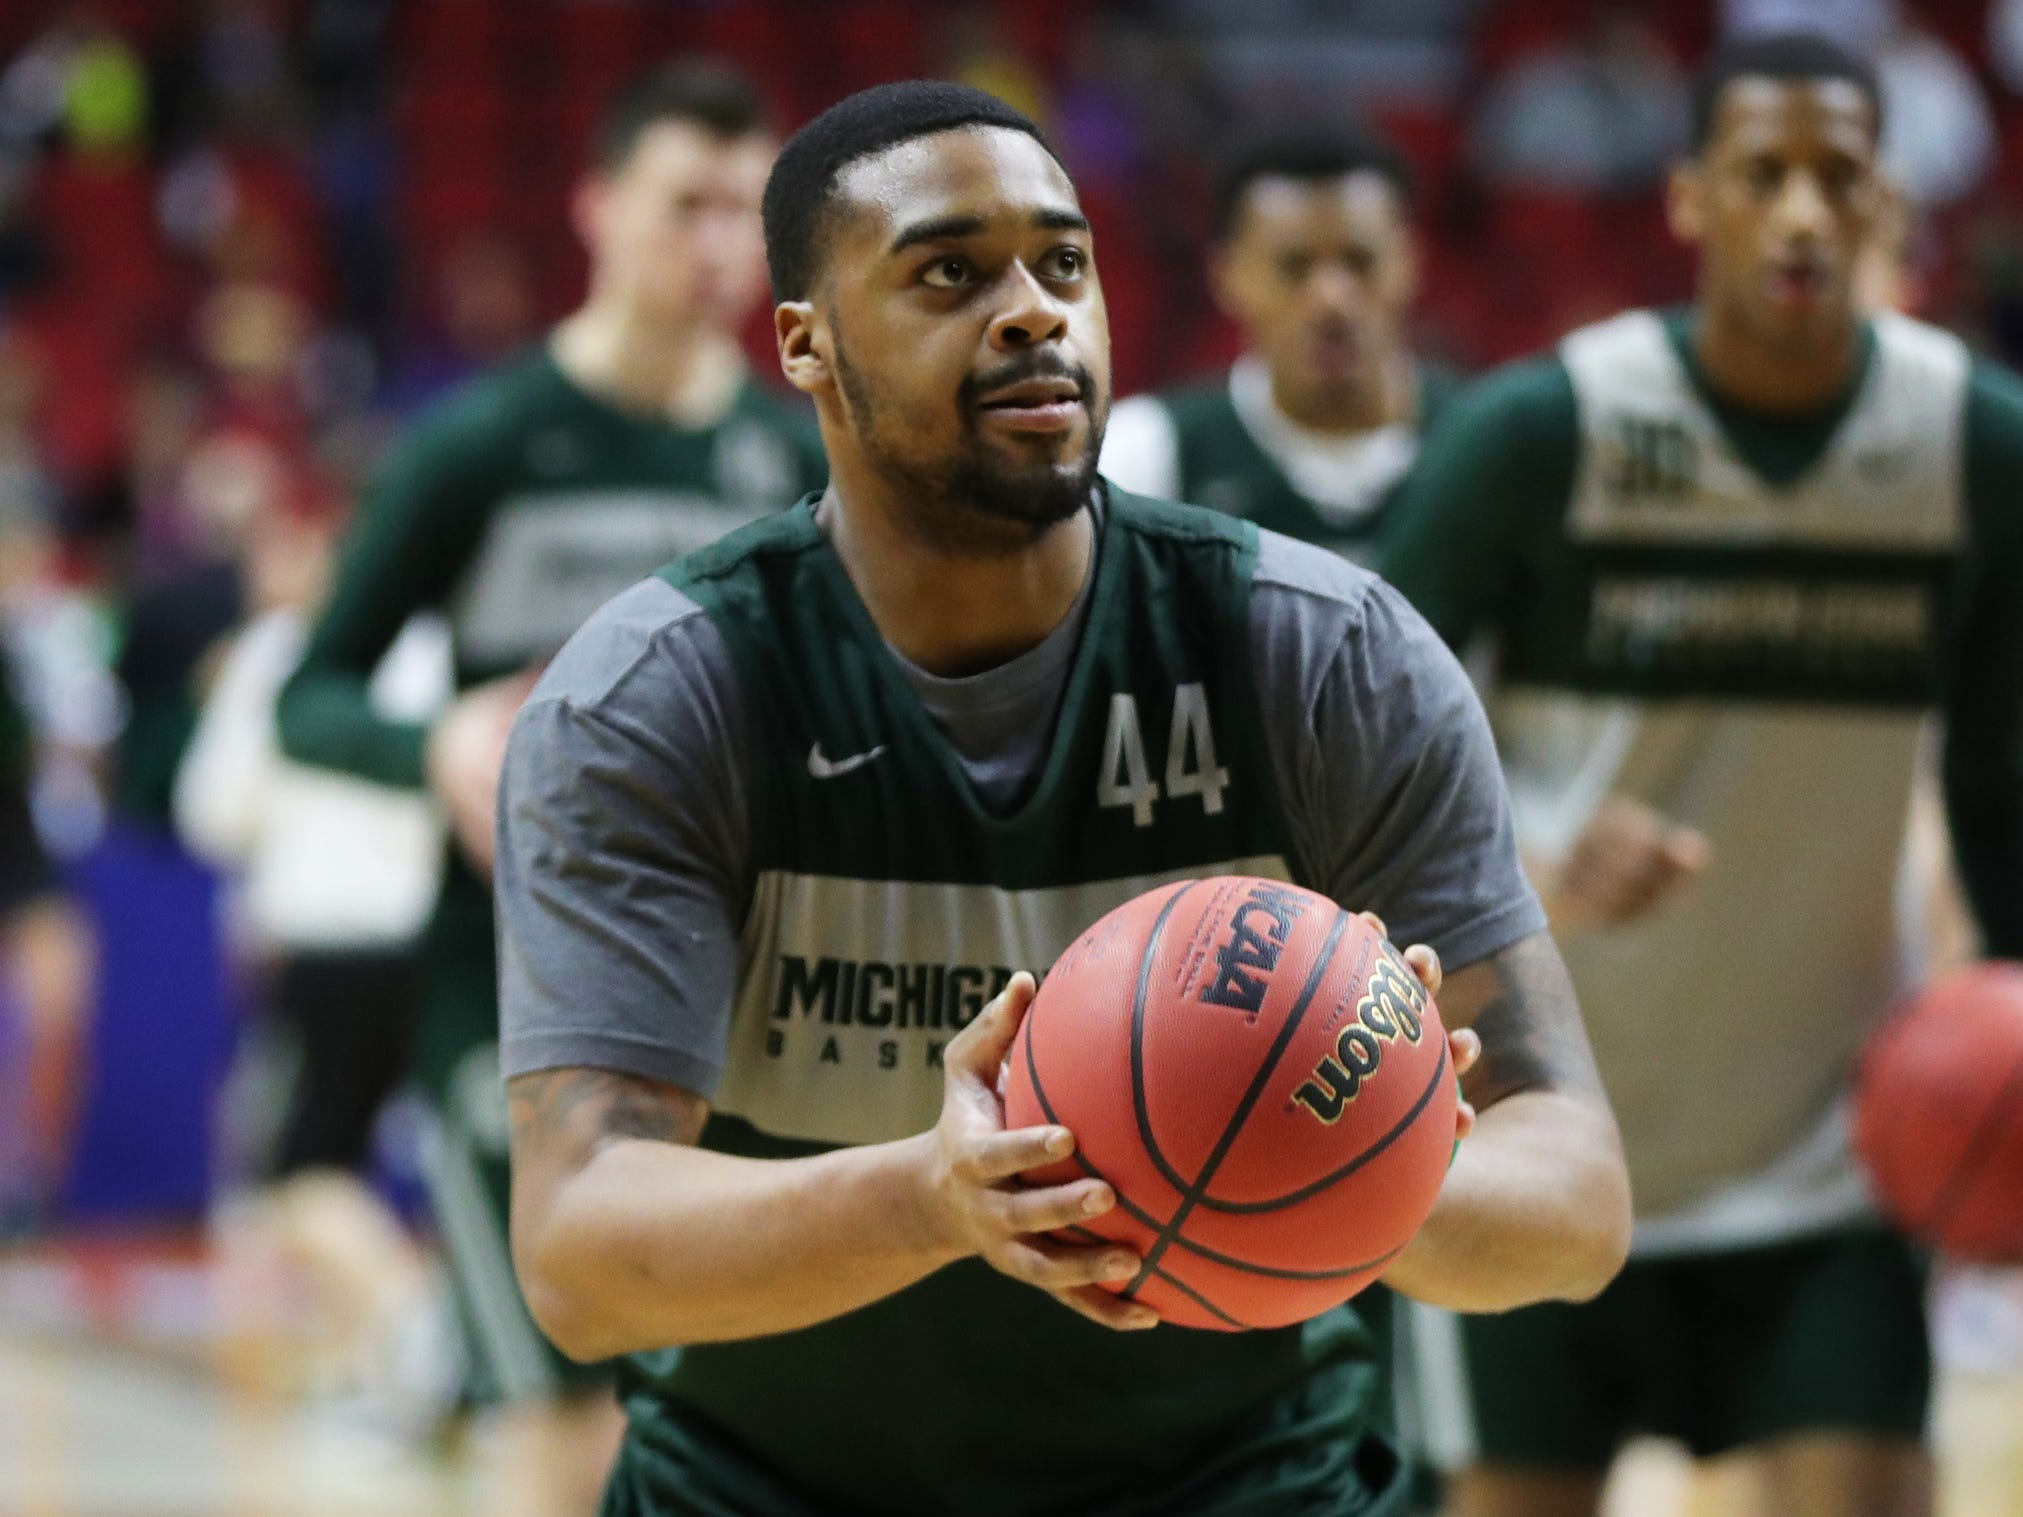 Michigan State forward Nick Ward shoots jumpers as his team prepares for the first-round NCAA tournament game against Michigan State on Wednesday, March 20, 2019 at Wells Fargo Arena in Des Moines, Iowa.